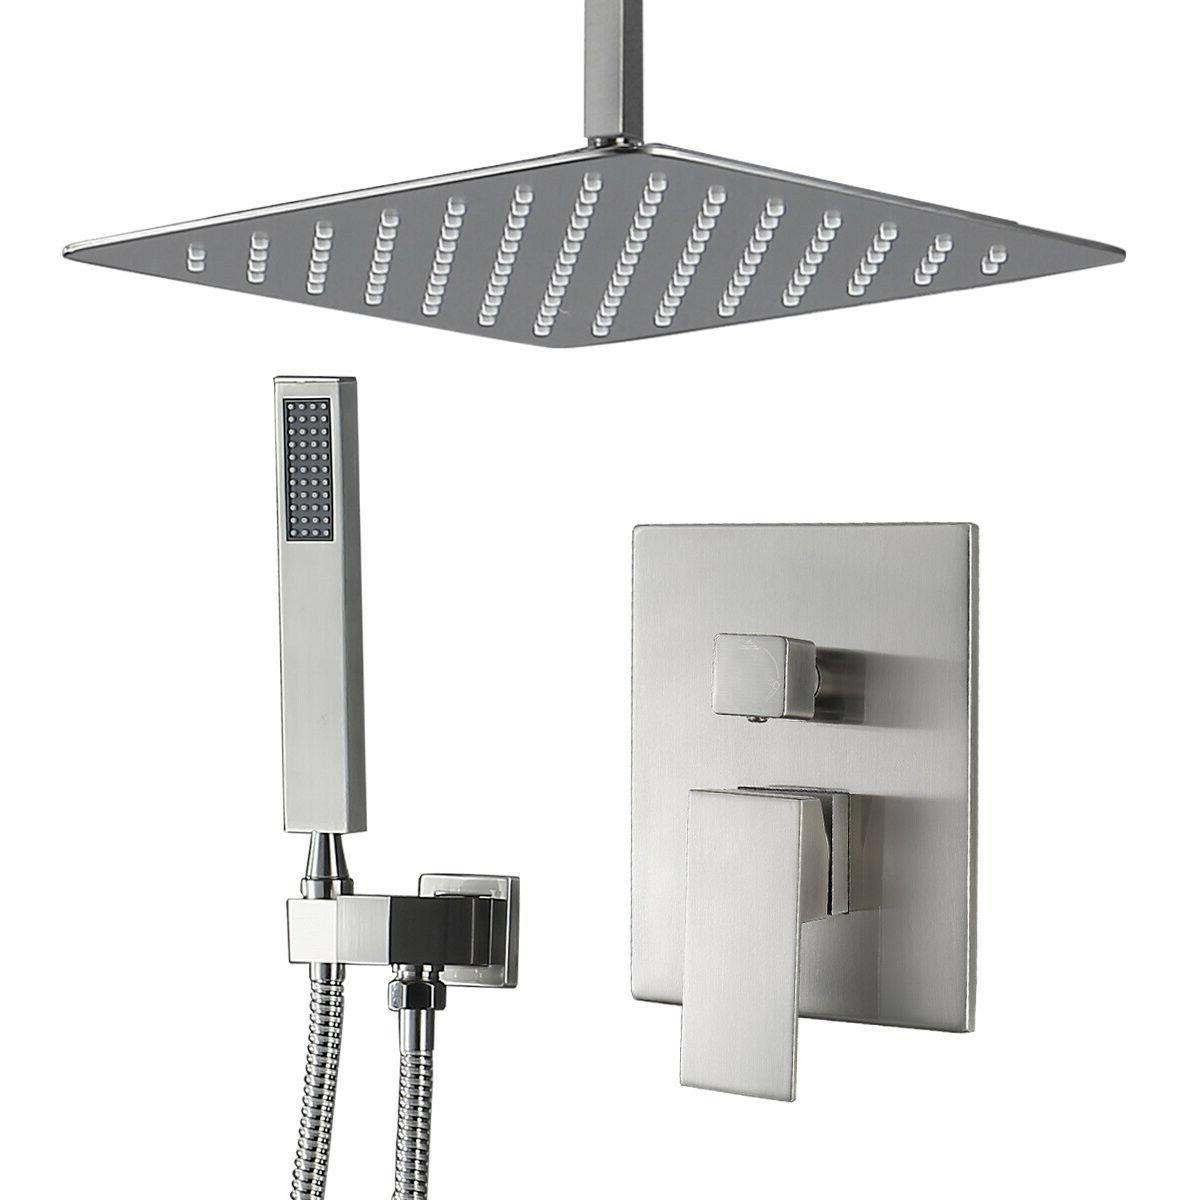 led oil rubbed bronze bathroom shower set